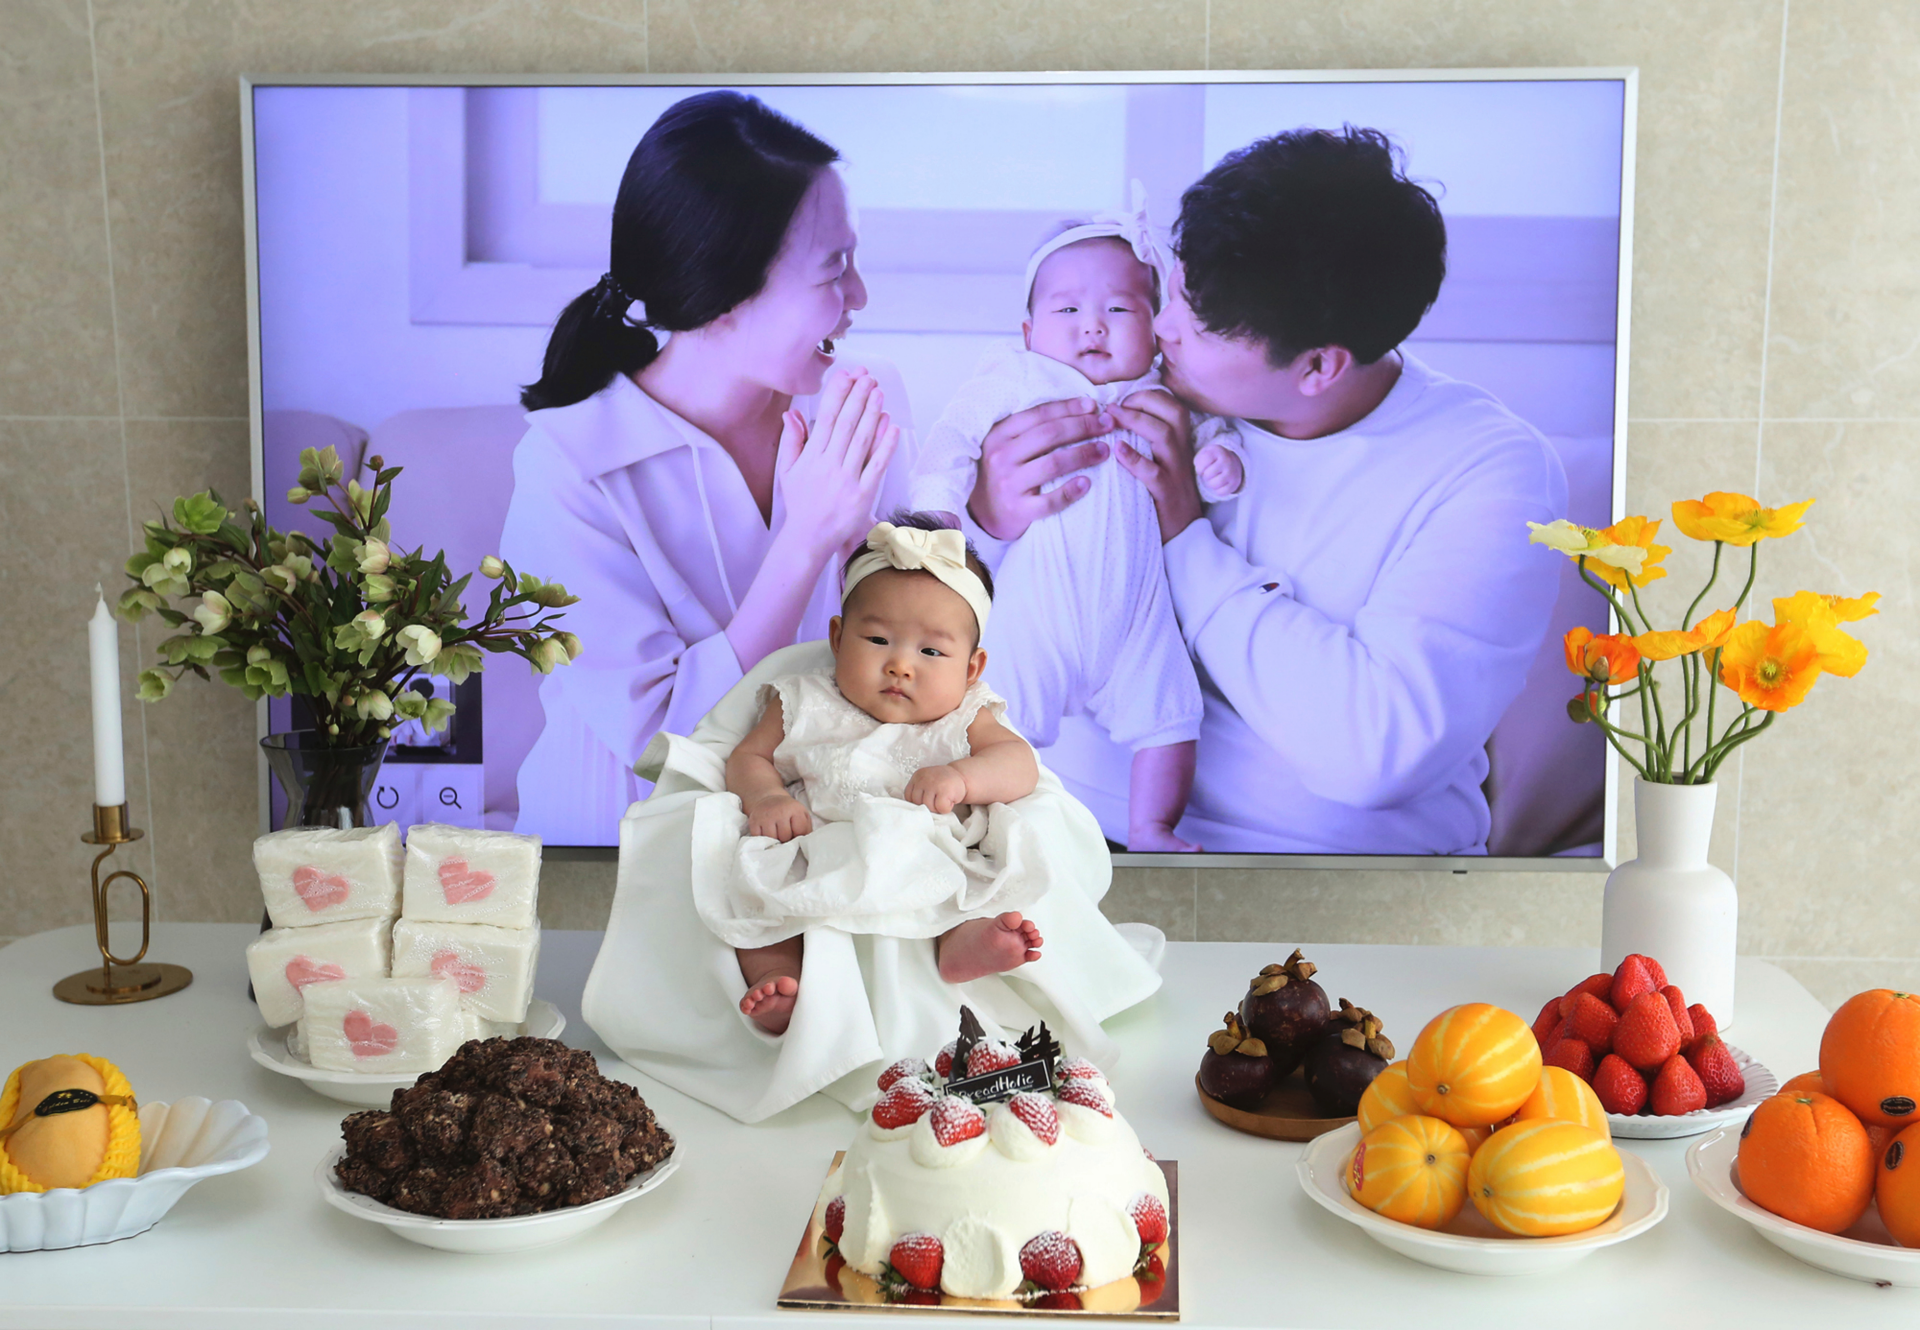 S. Korean babies born Dec. 31 become 2-year-olds next day